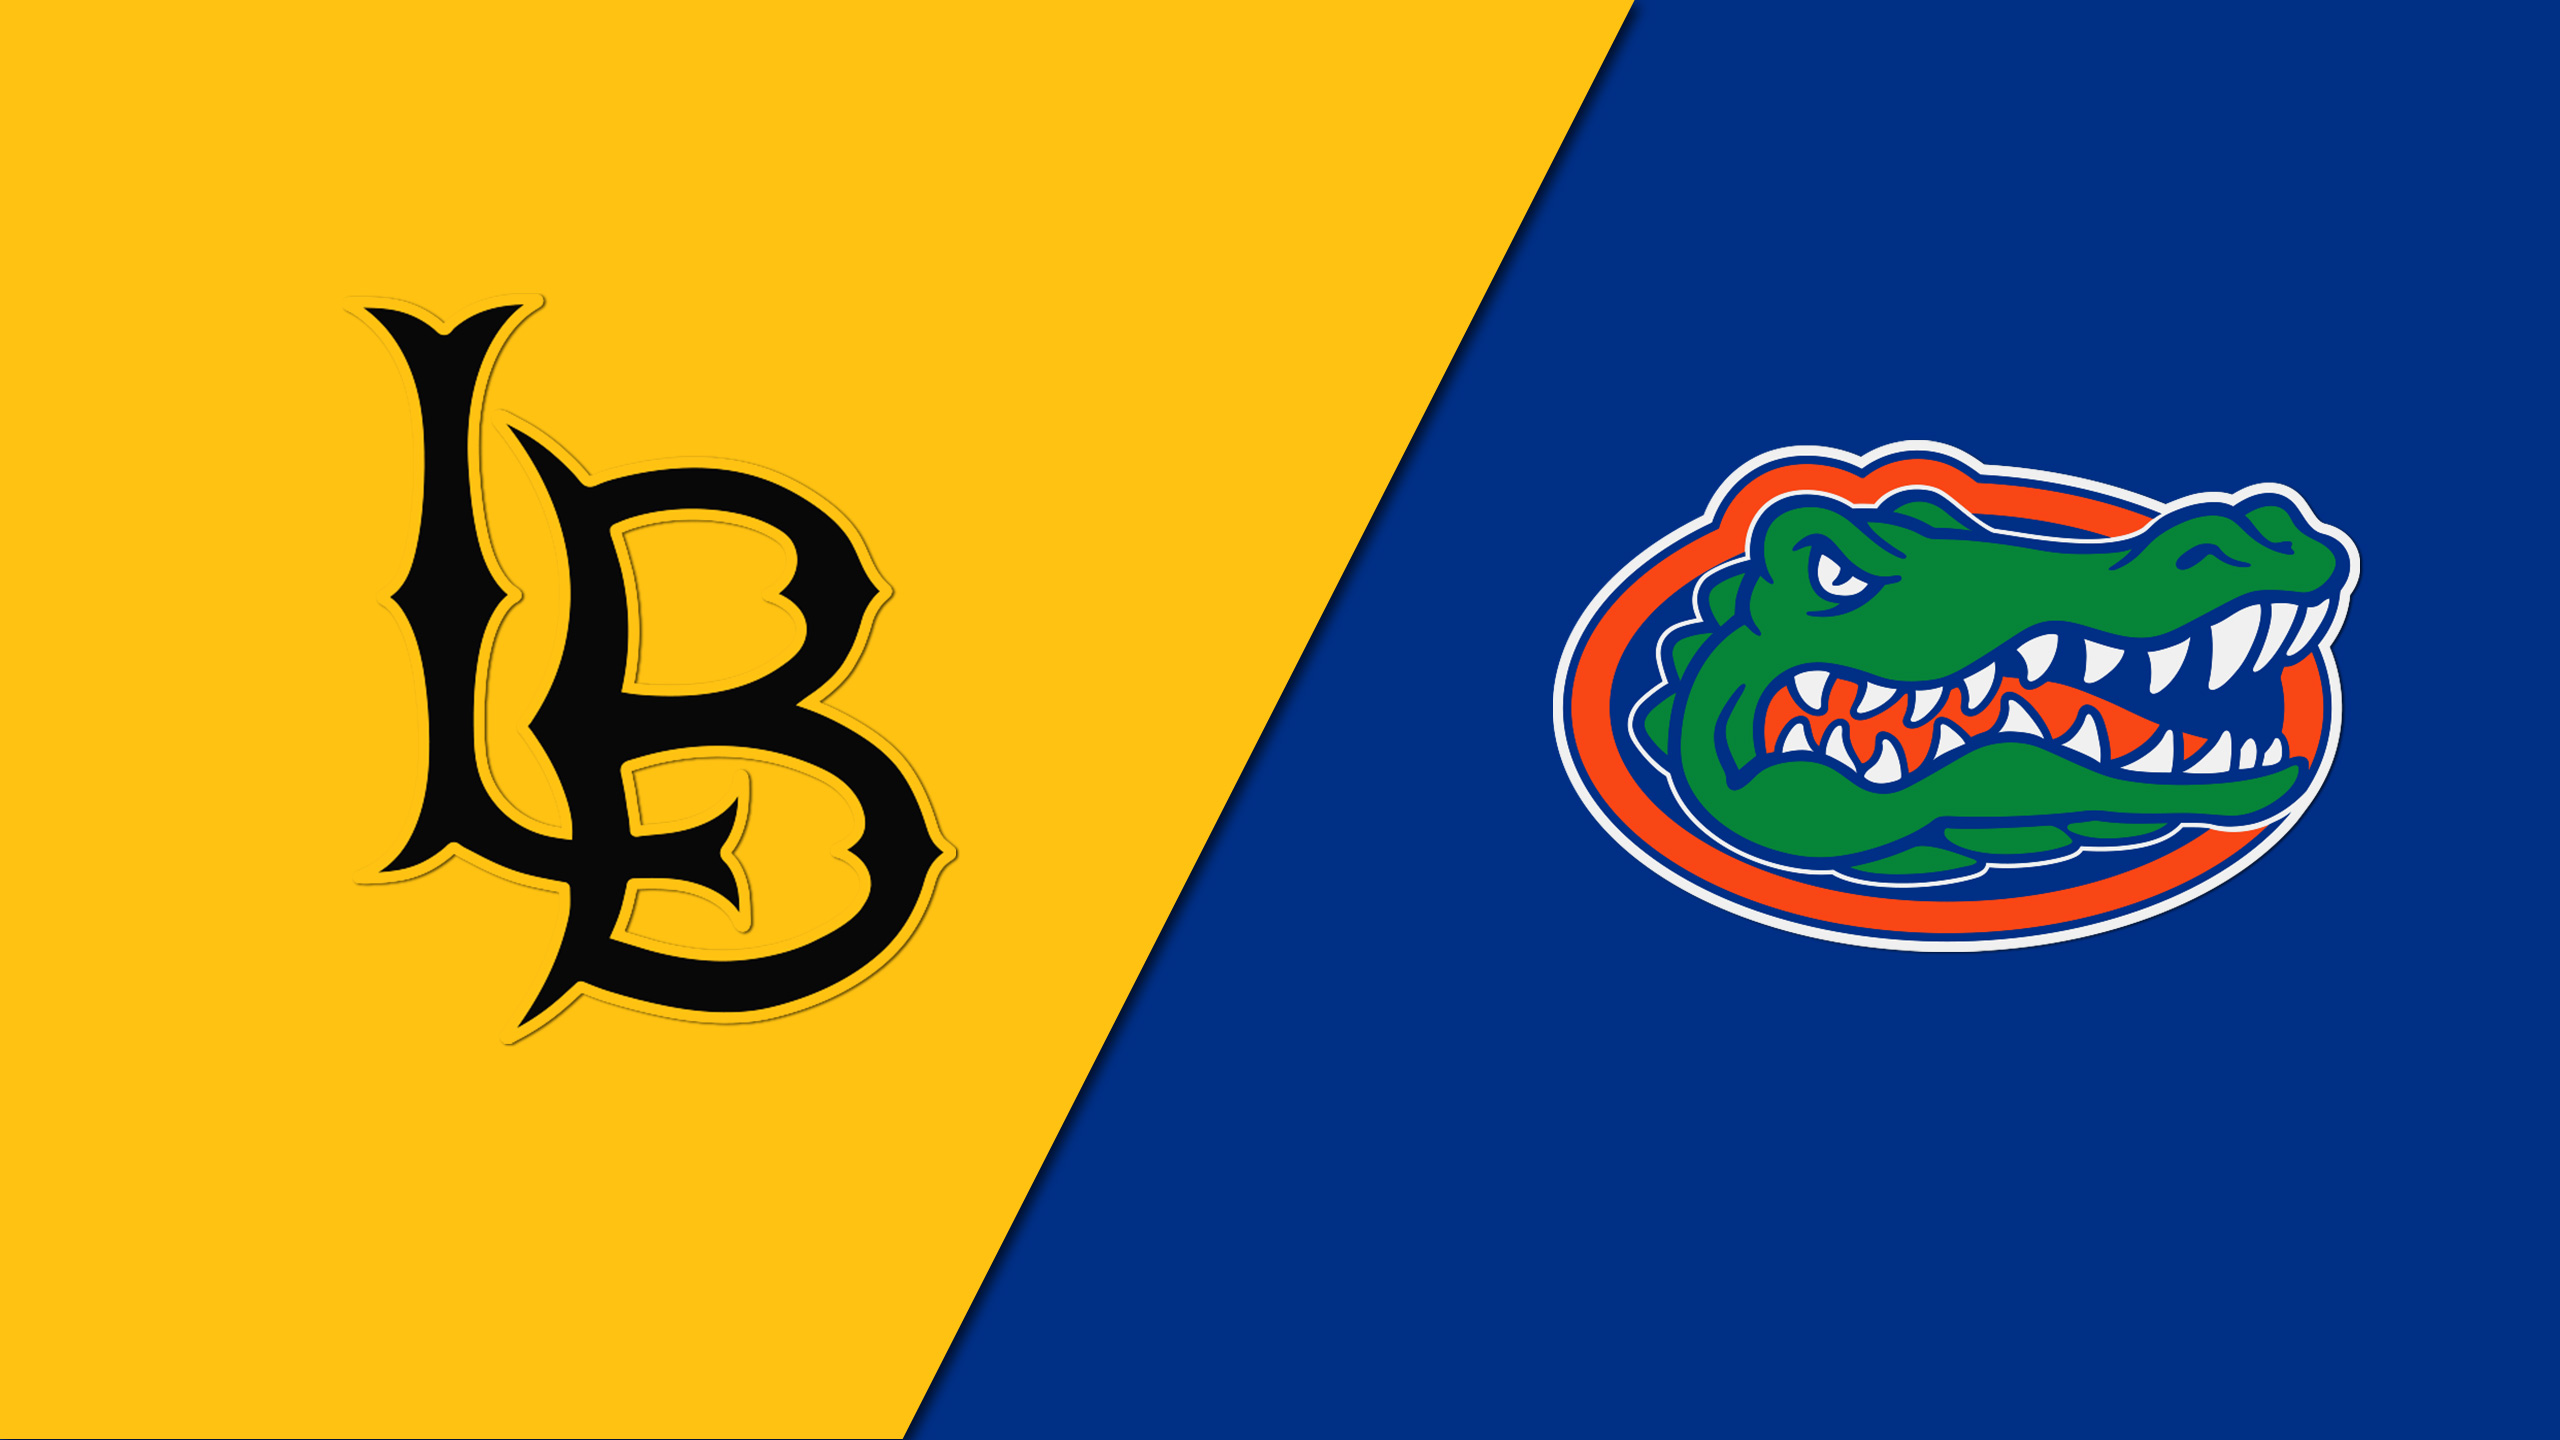 Long Beach State vs. #3 Florida (Baseball)